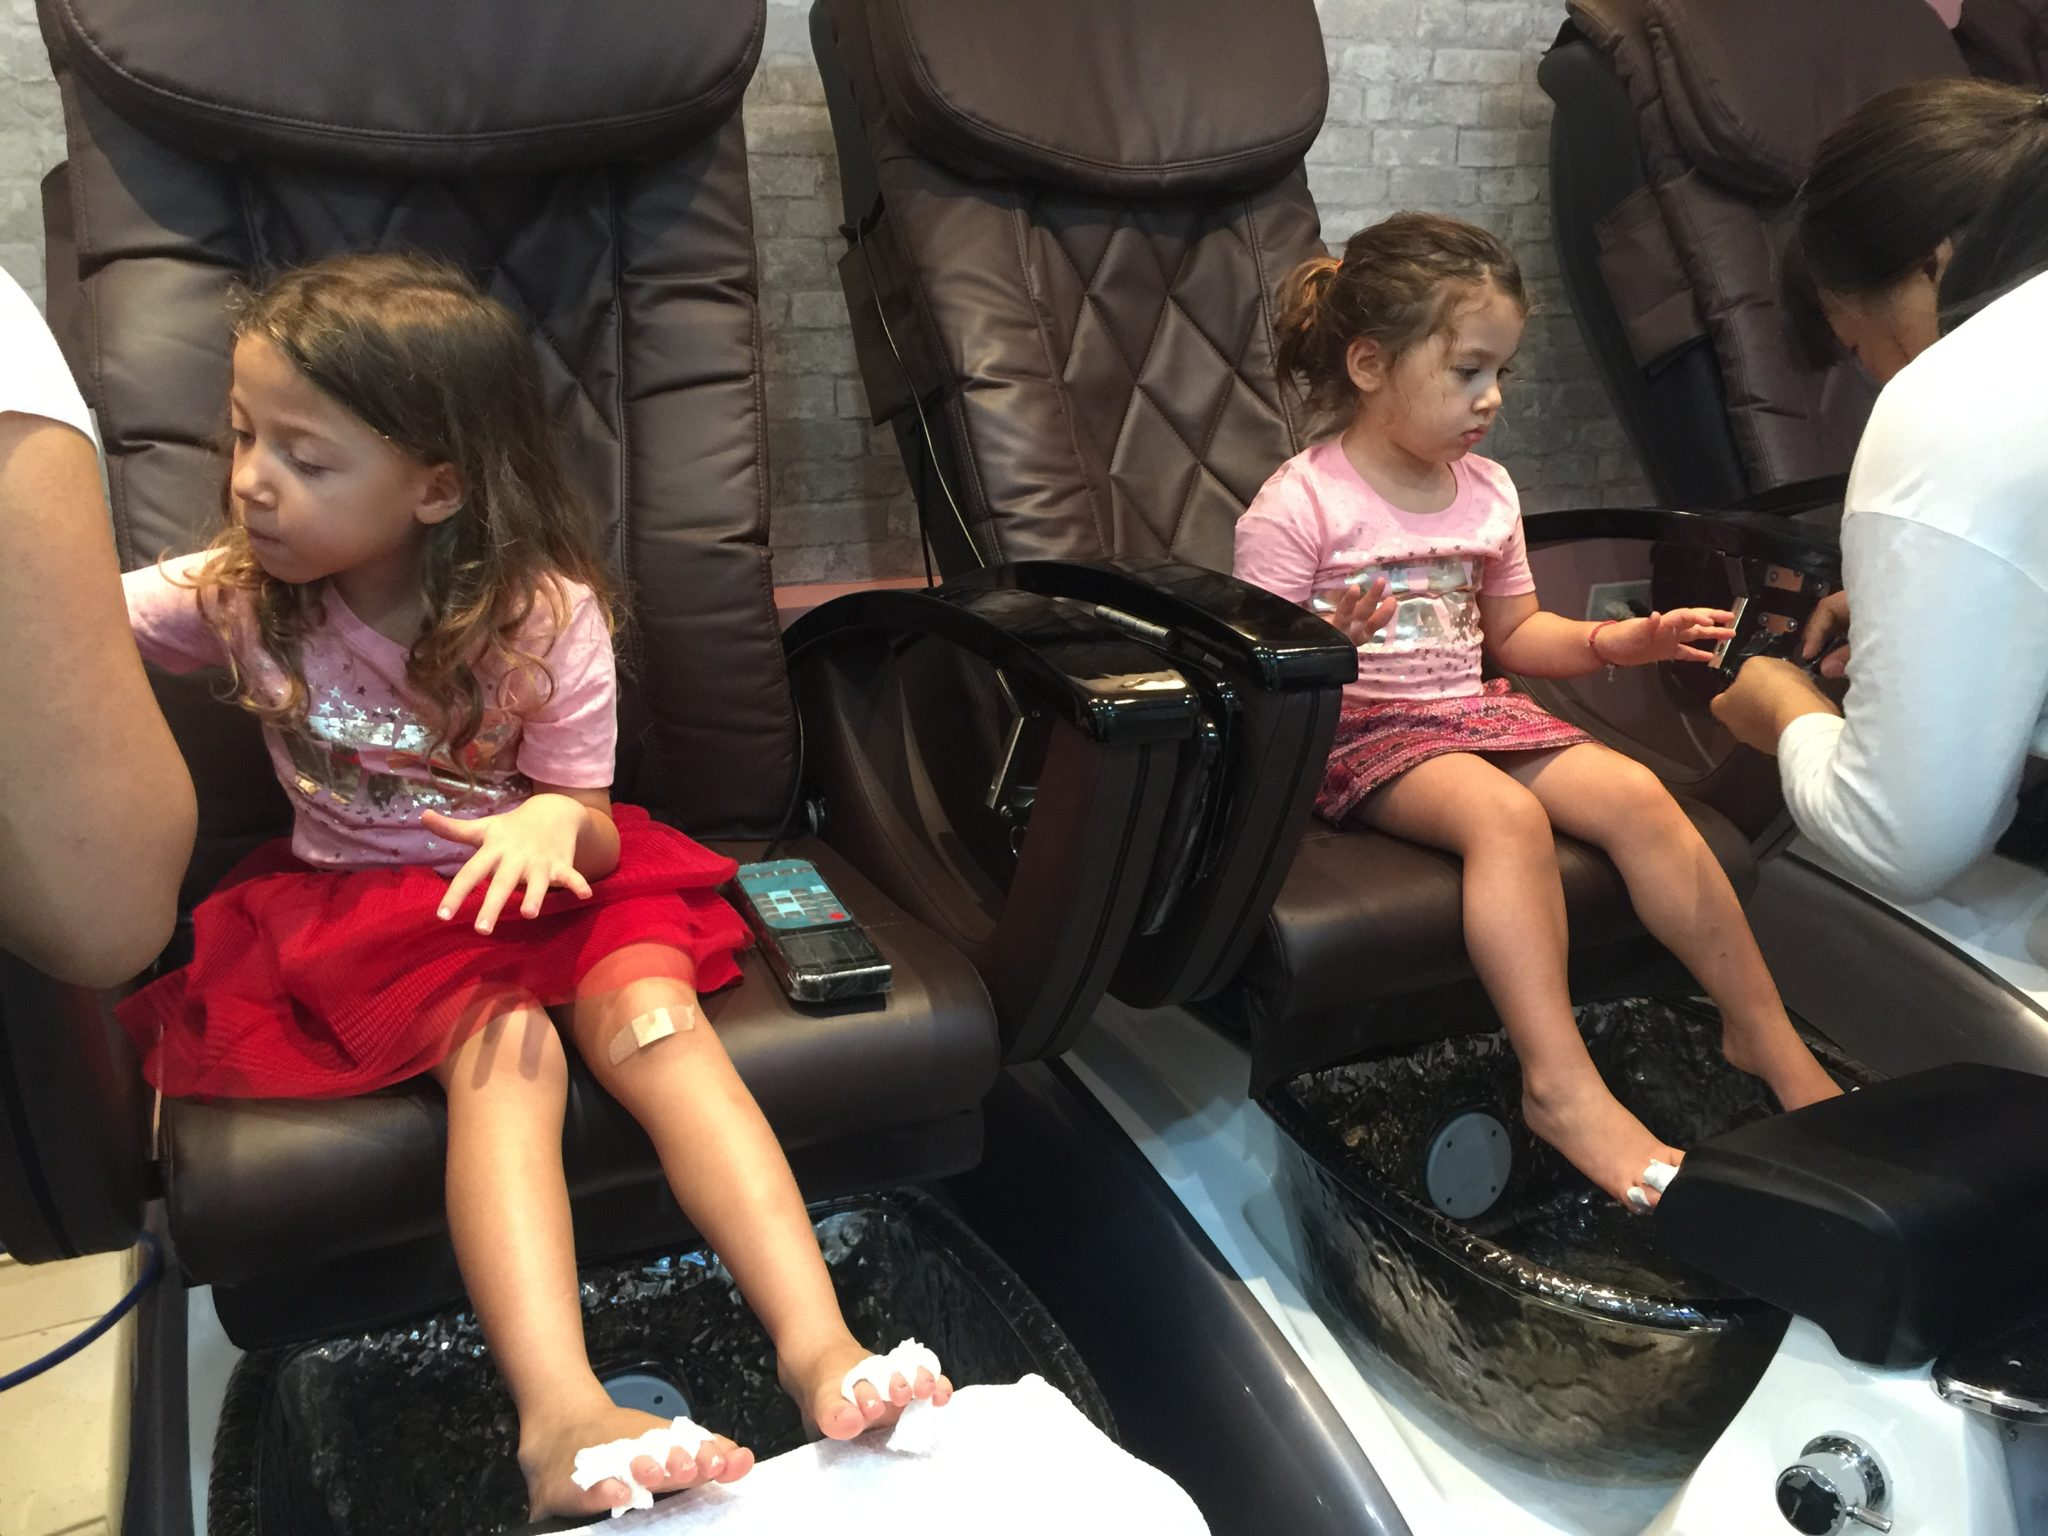 New York pedicure bimbe